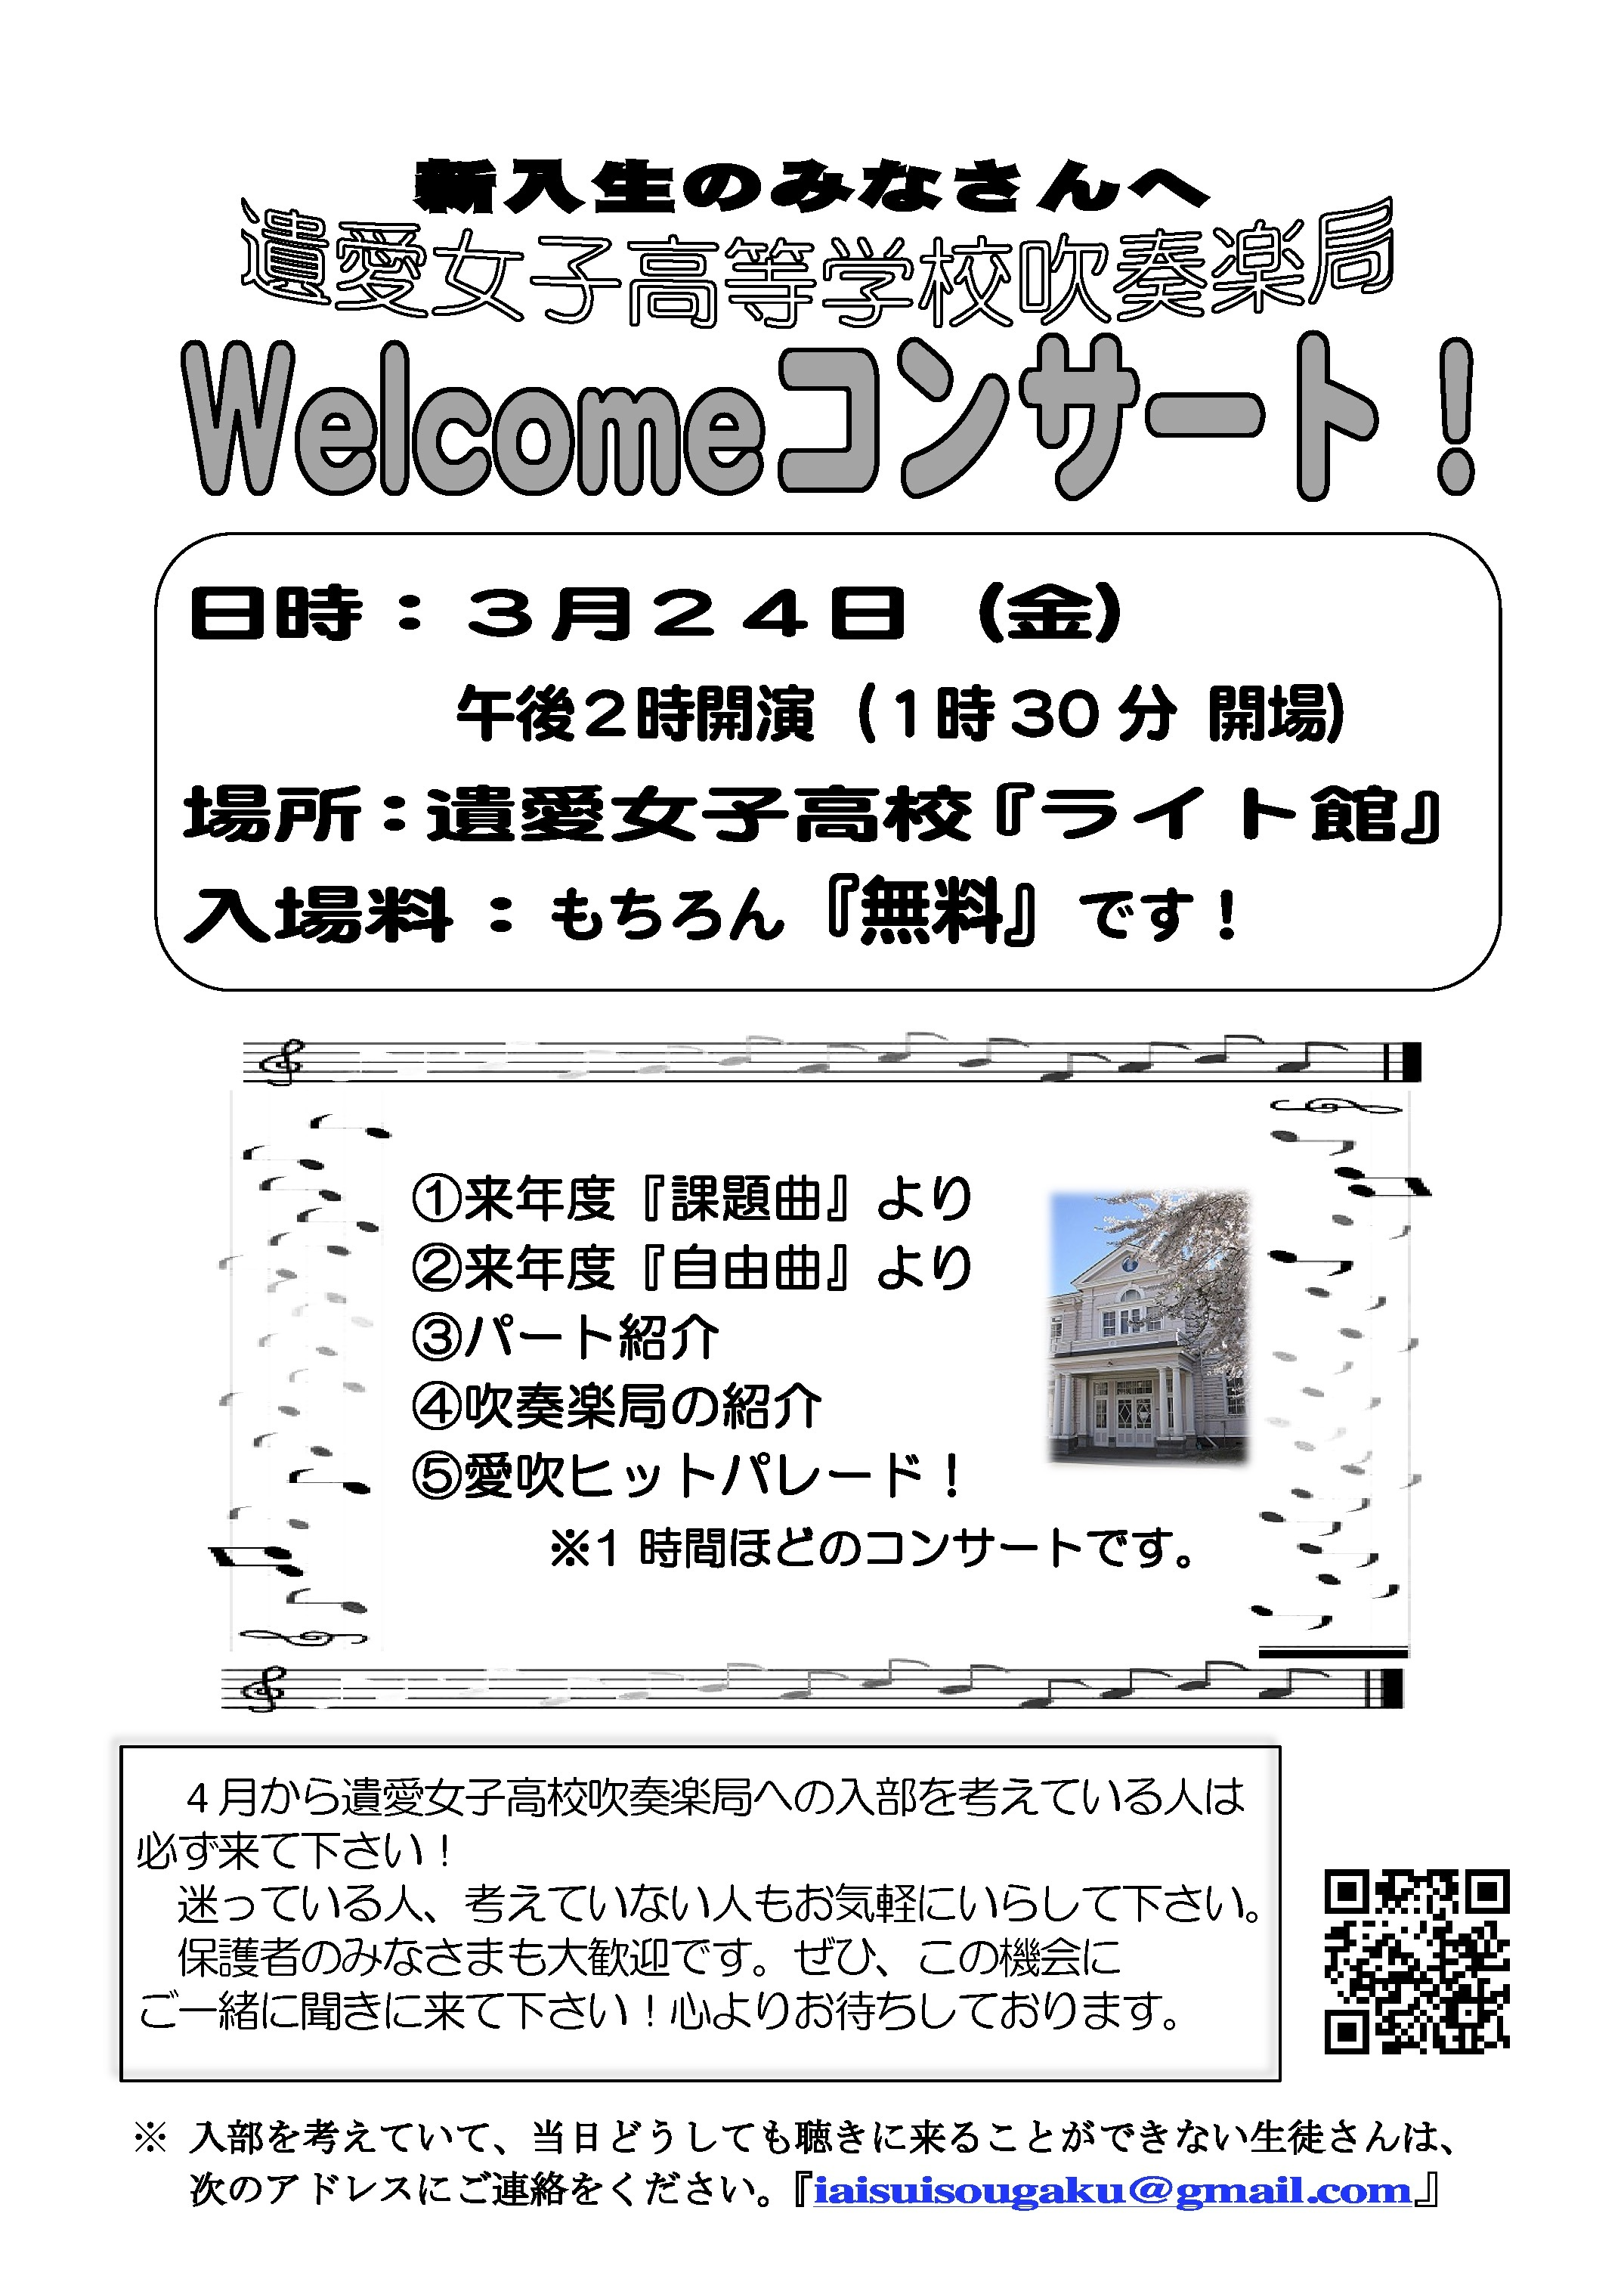 Welcomeコンサート